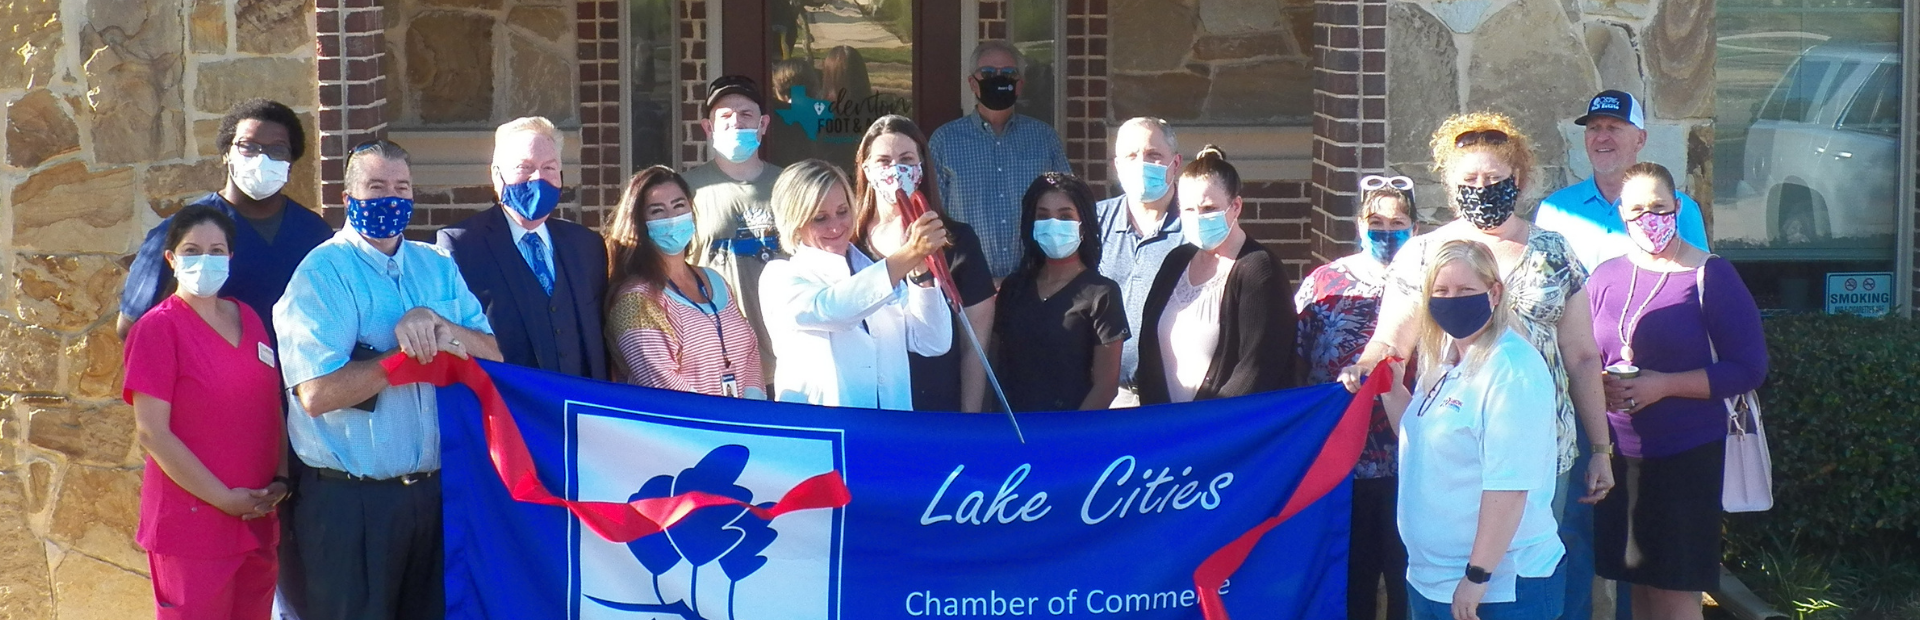 Lake Cities Chamber of Commerce | Ribbon Cutting | Denton Foot & Ankle